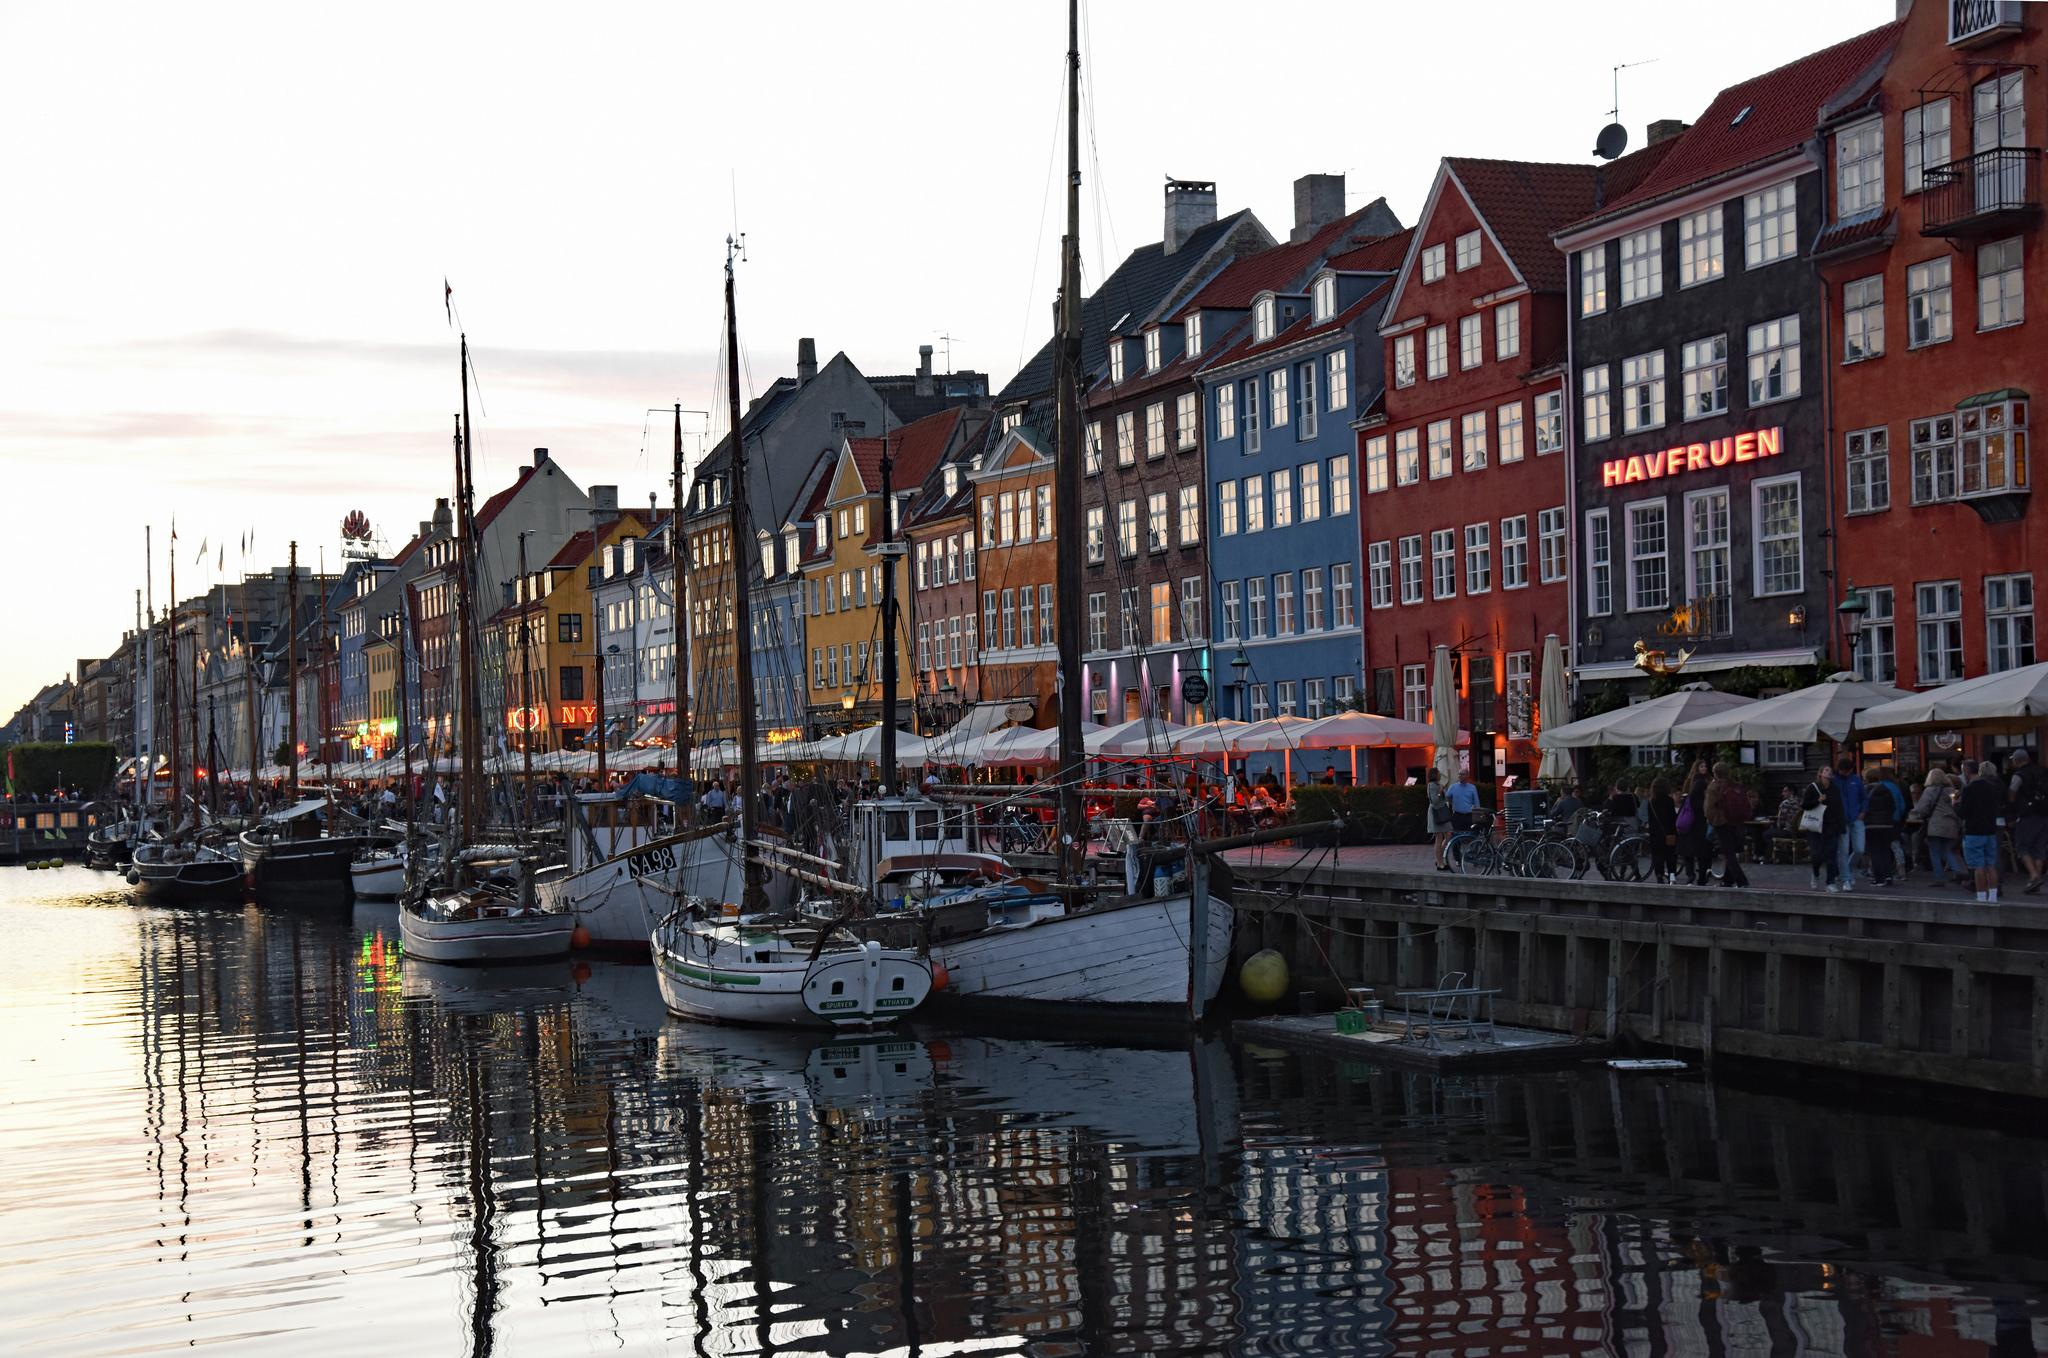 Nyhavn at Nightfall